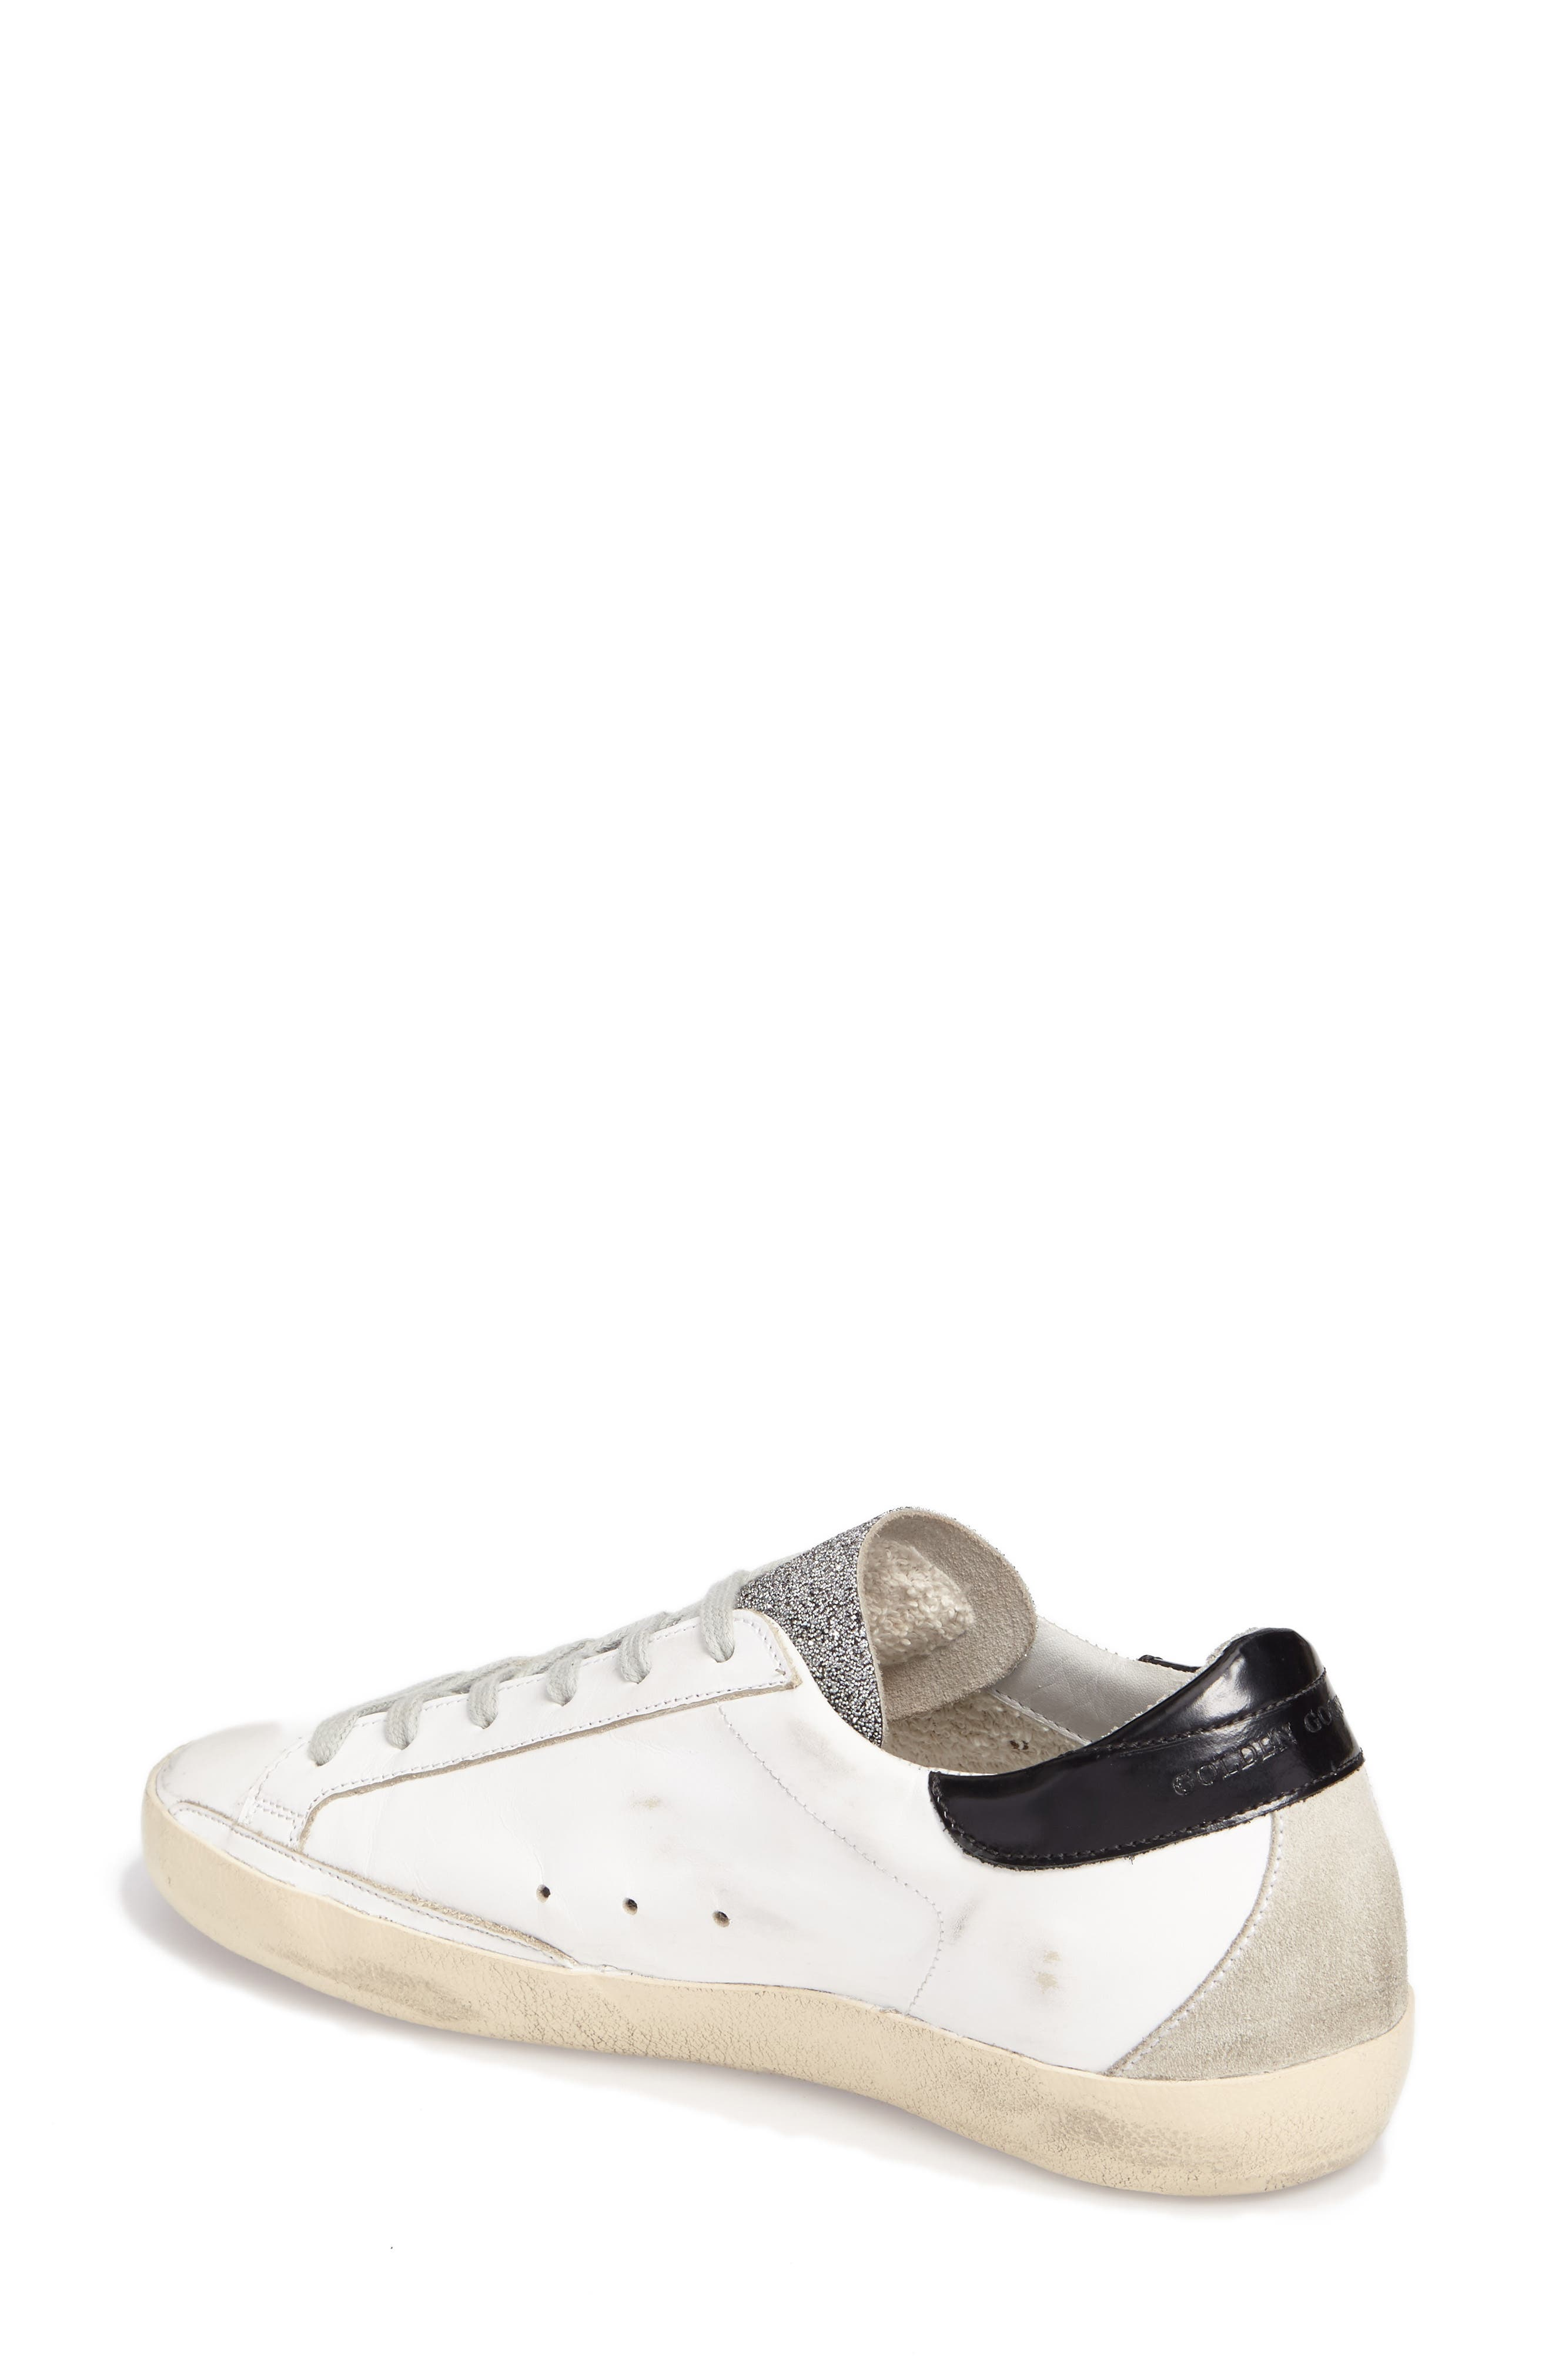 Superstar Low Top Sneaker,                             Alternate thumbnail 2, color,                             100